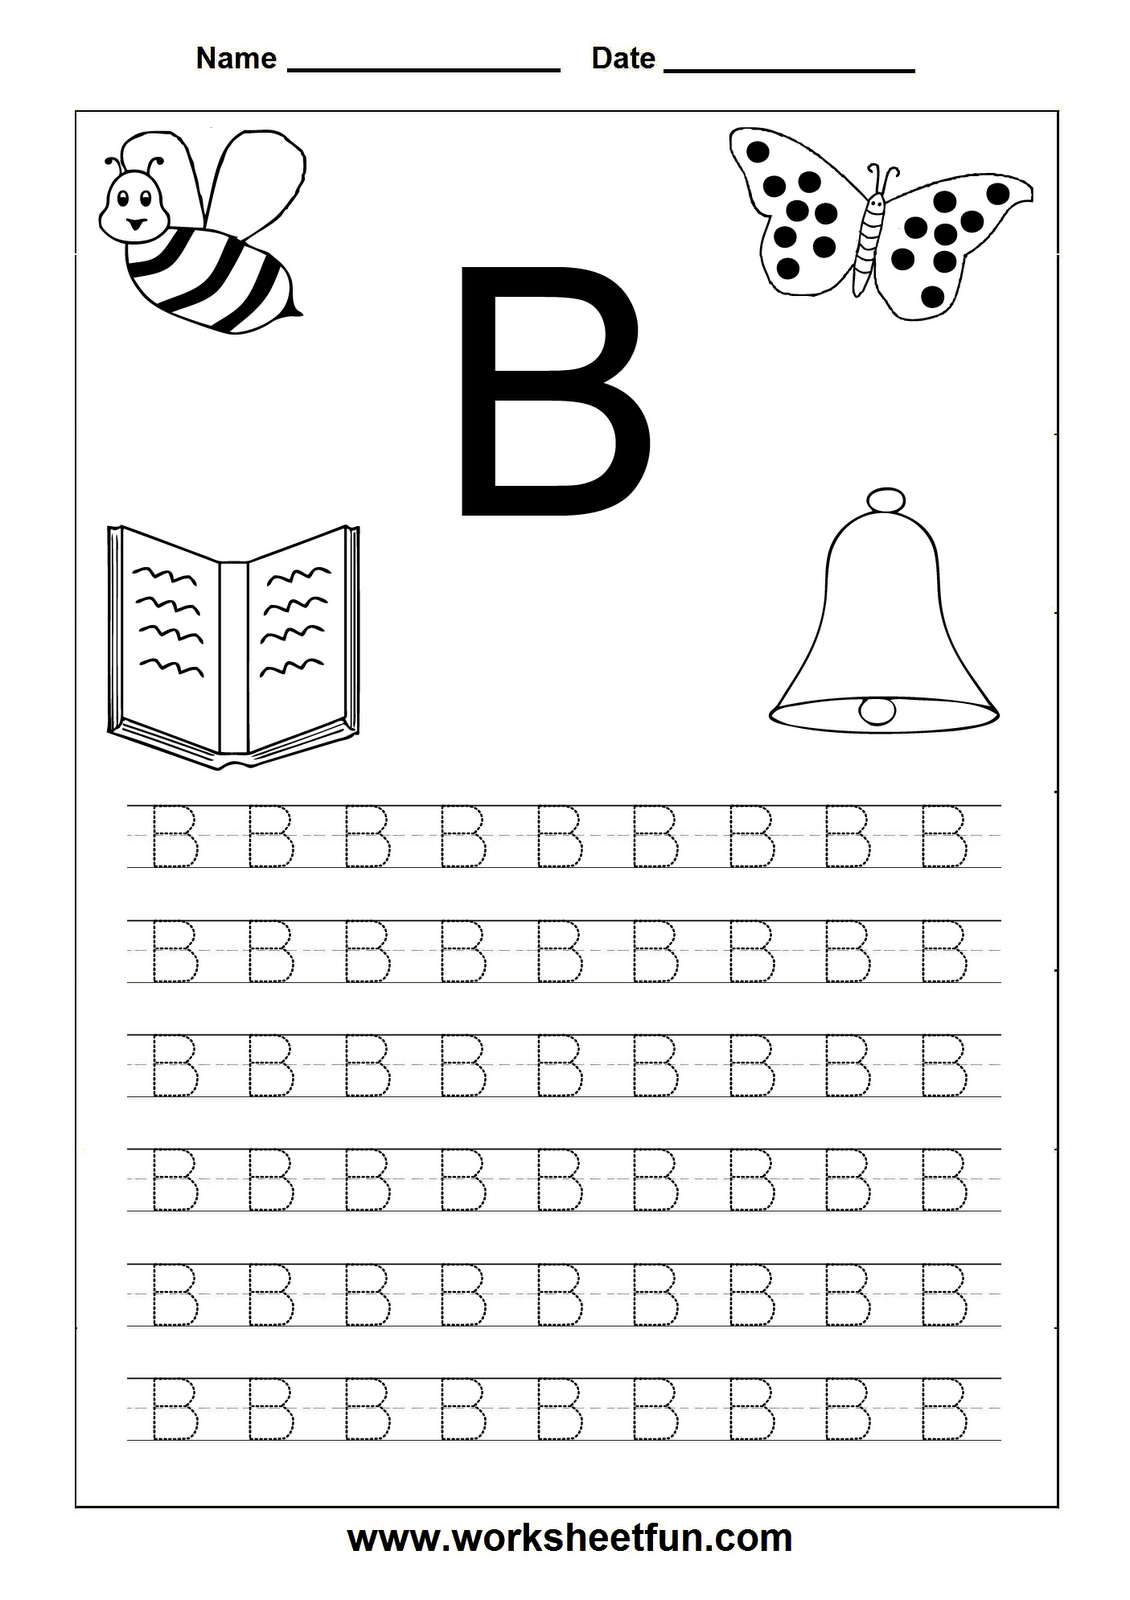 math worksheet : 1000 images about alphabet fun on pinterest  printable  : Free Alphabet Worksheets For Kindergarten